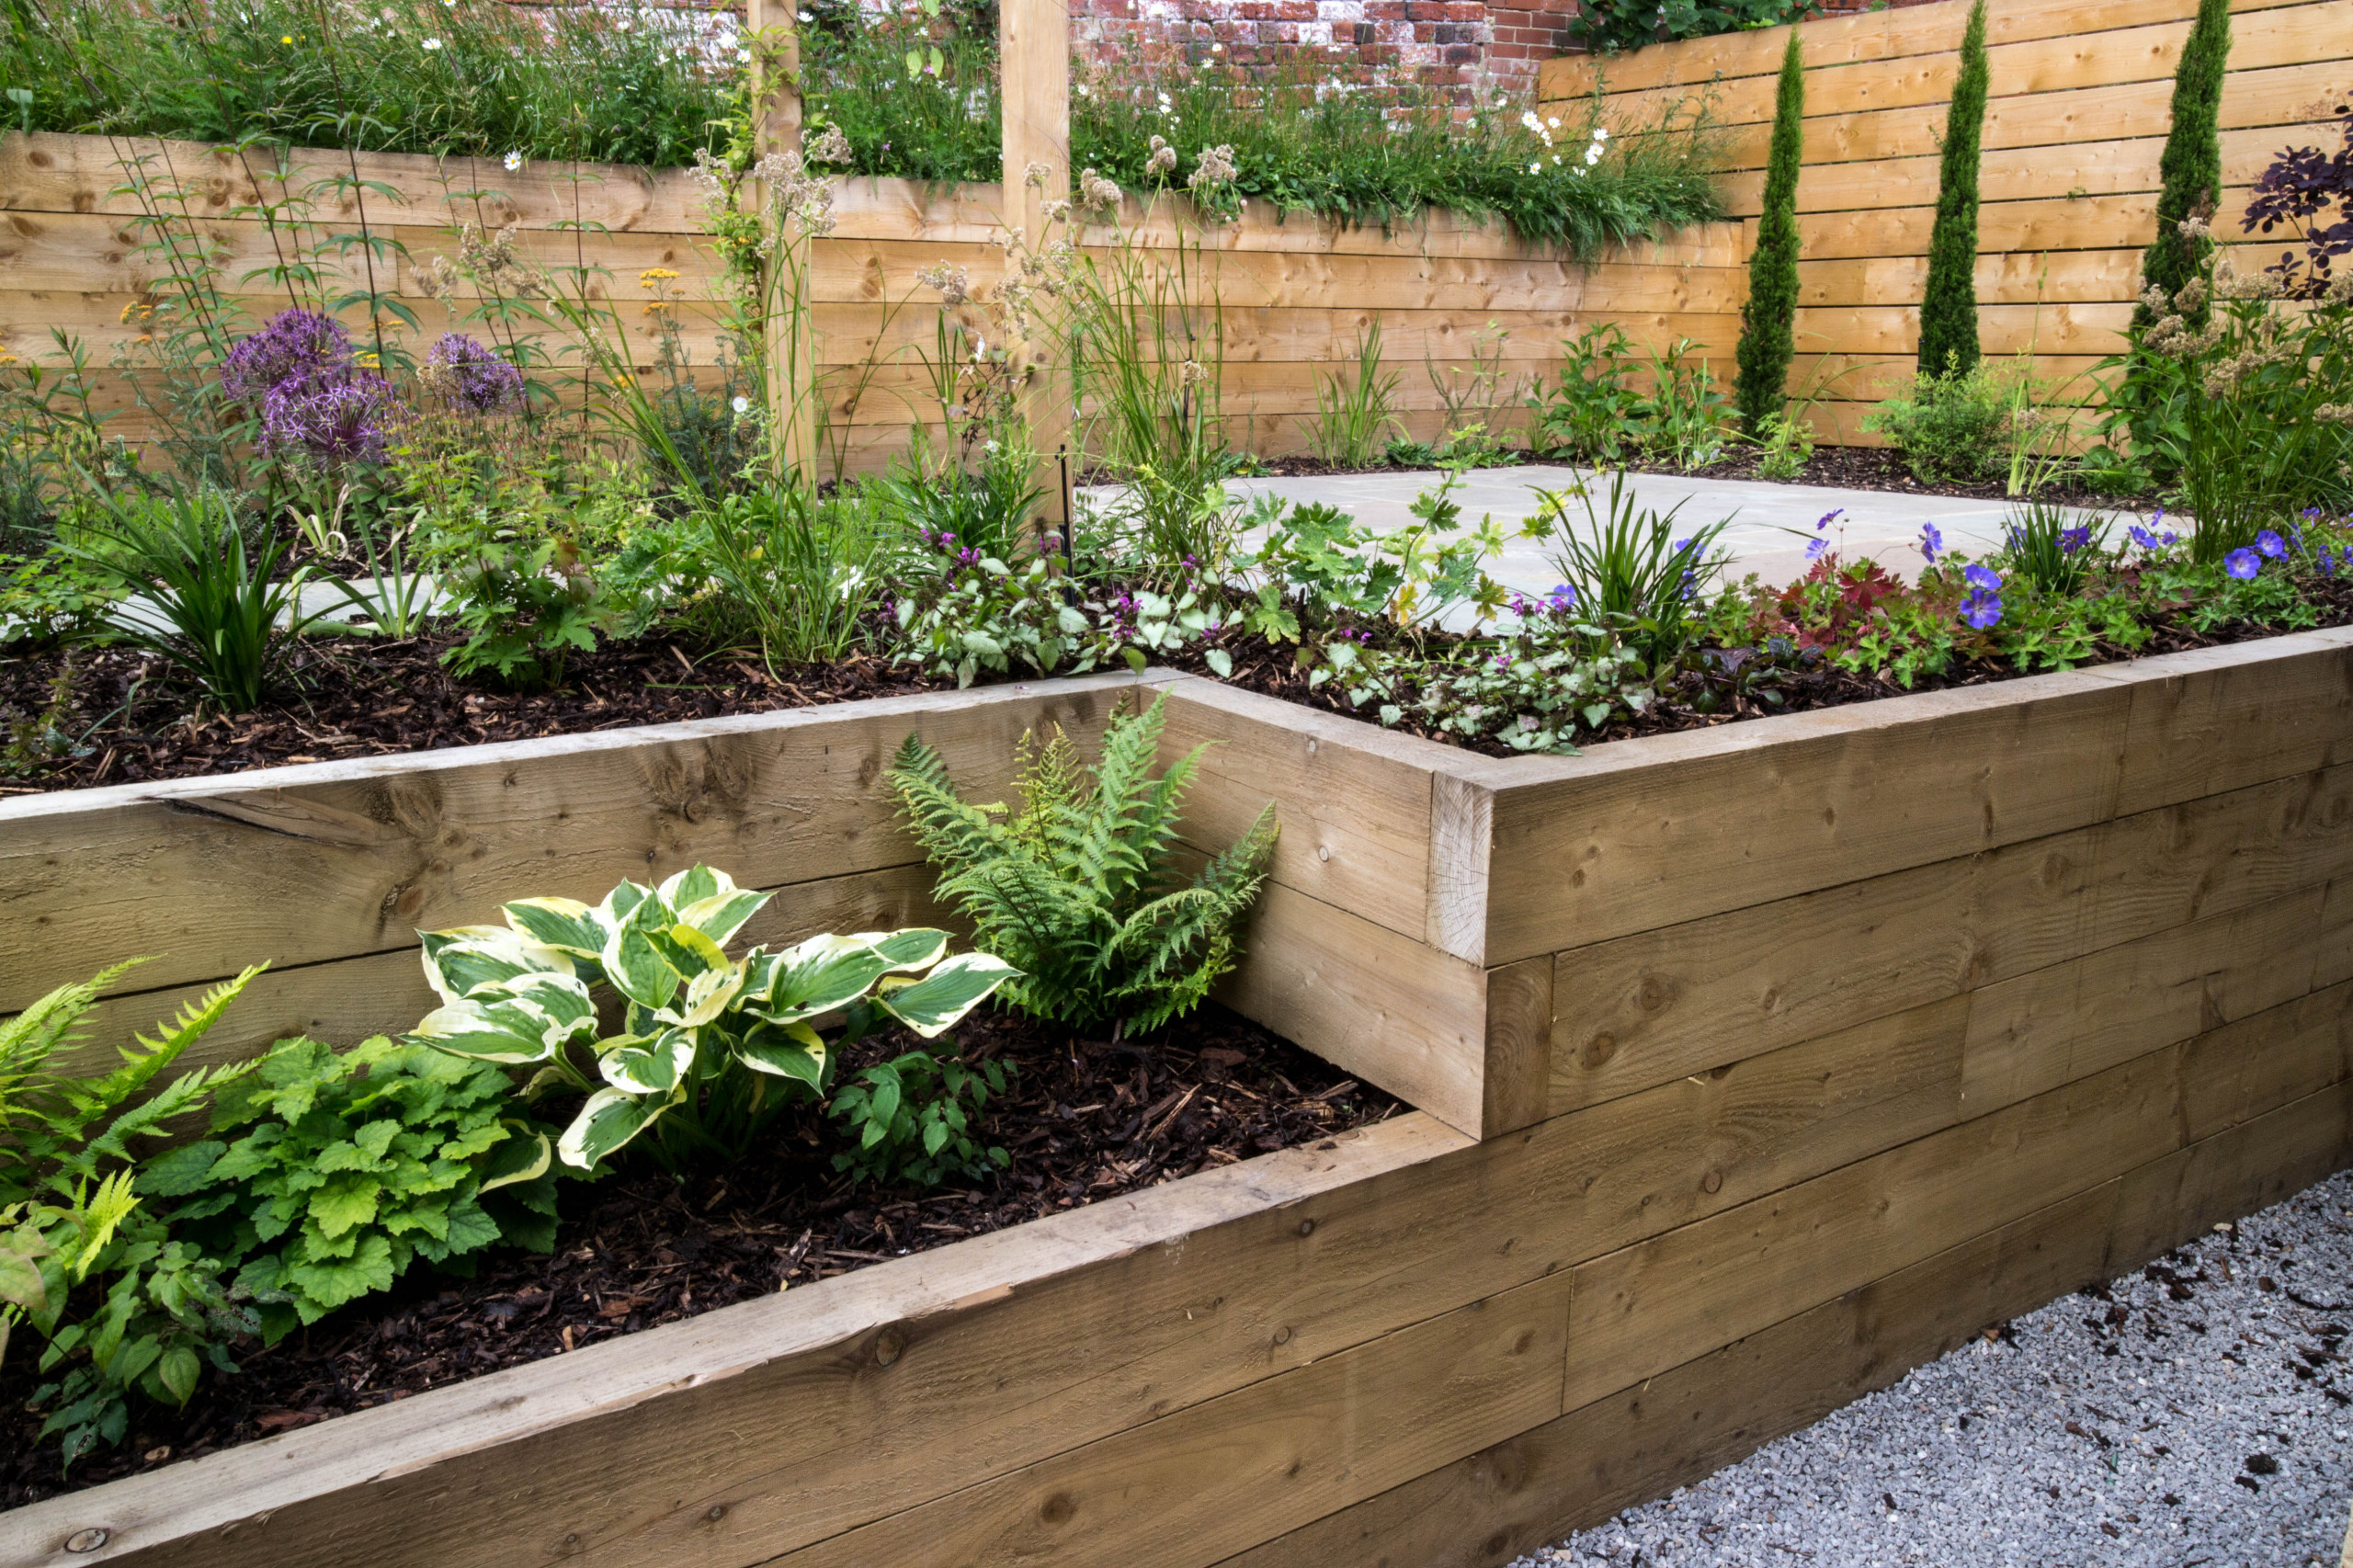 75 Beautiful Contemporary Raised Garden Bed Pictures Ideas February 2021 Houzz